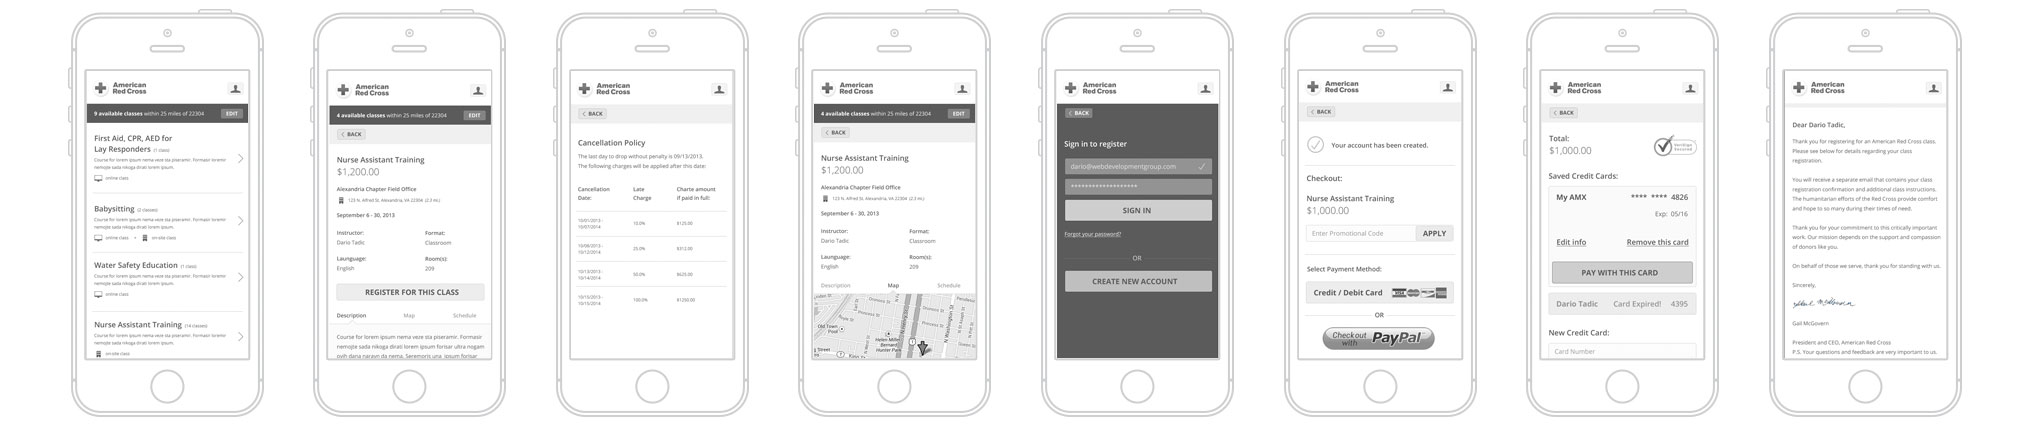 Red Cross wireframe comps